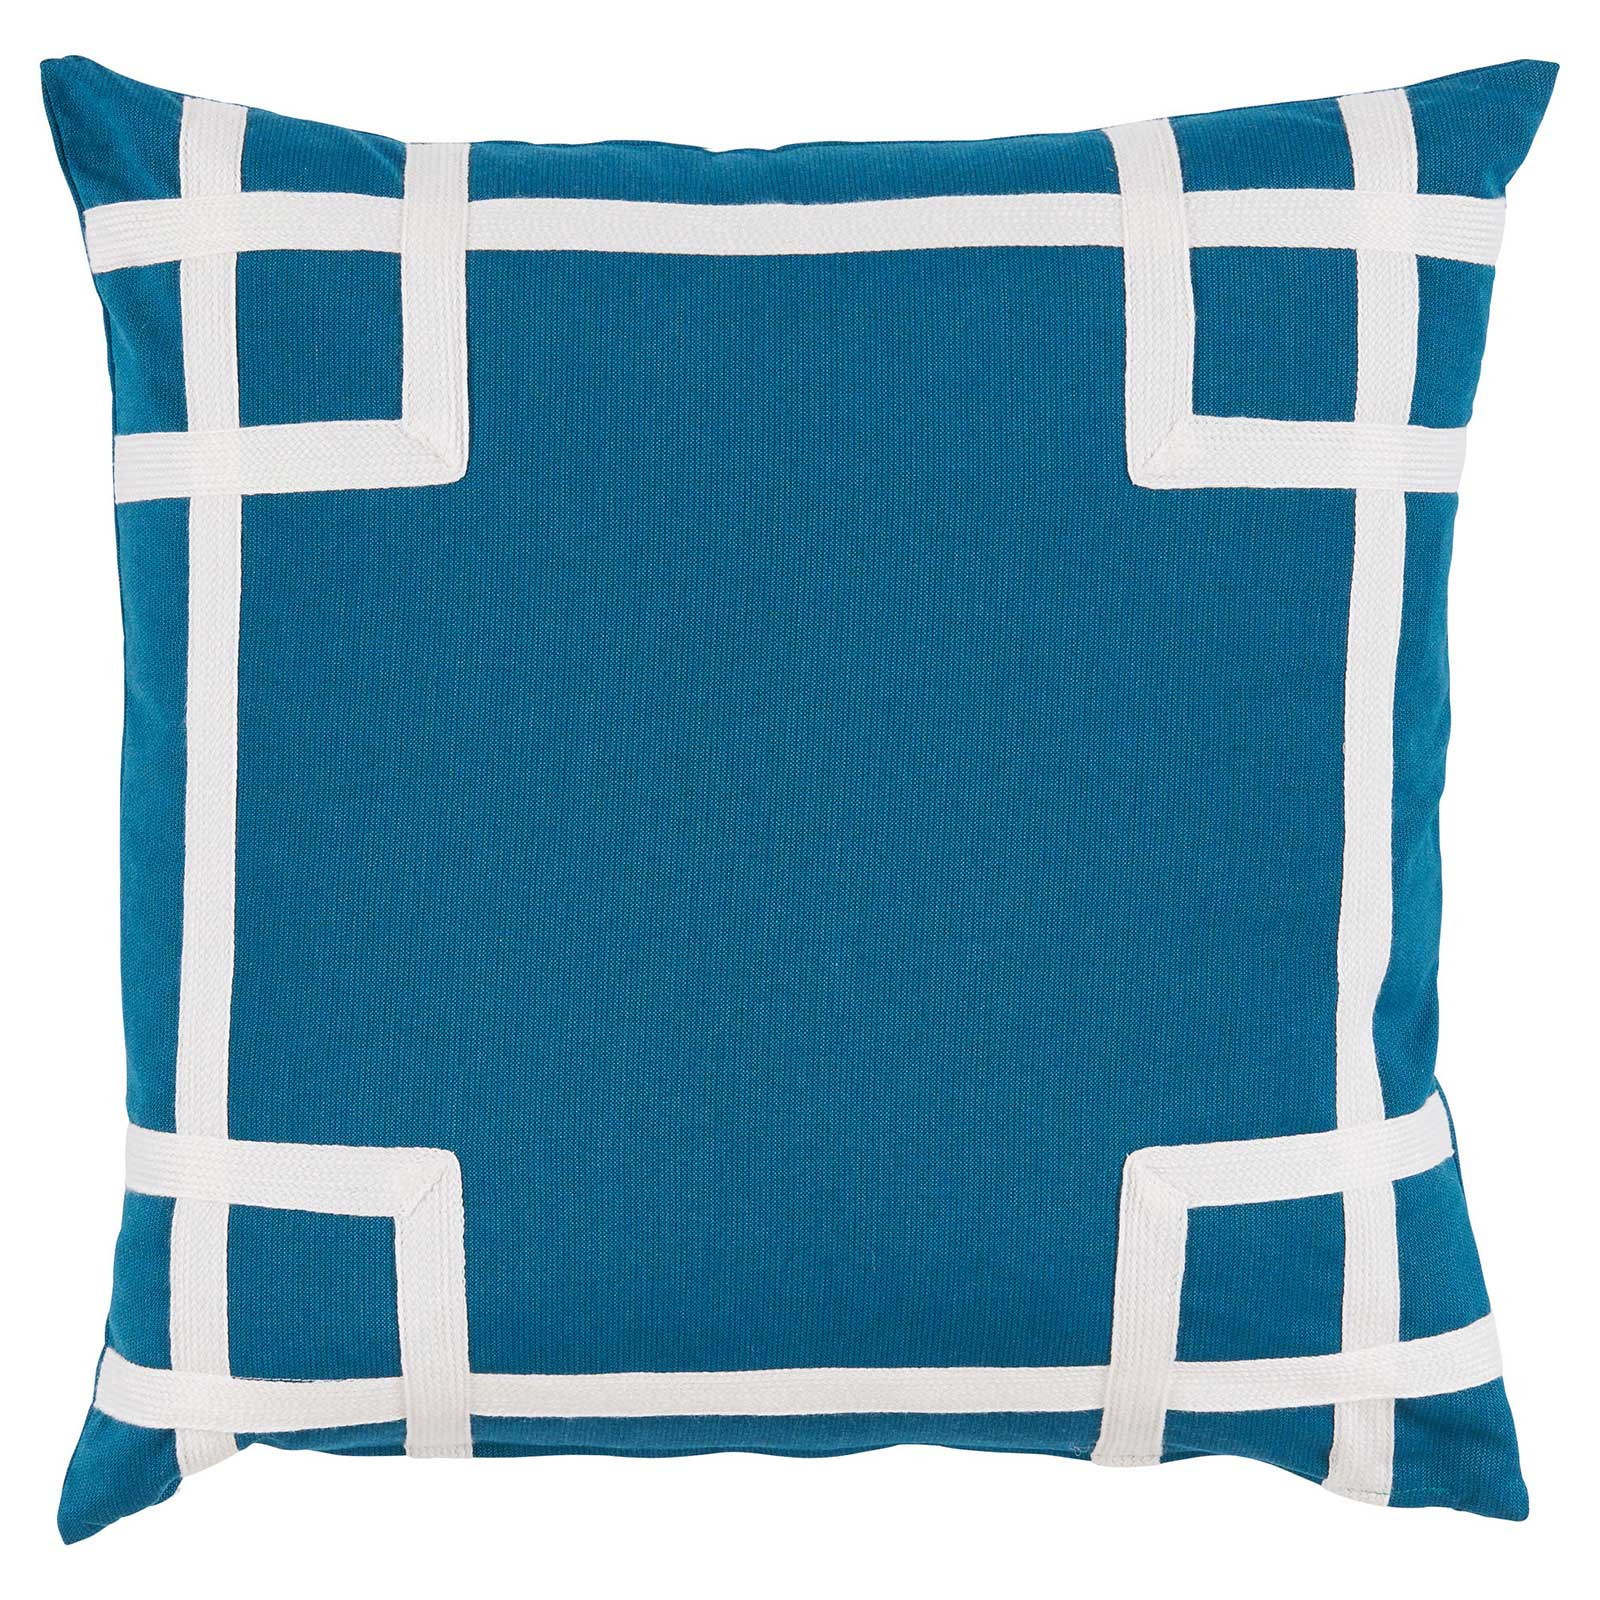 Paton Classic Outdoor Blue Trellis Trim Pillow - 20x20